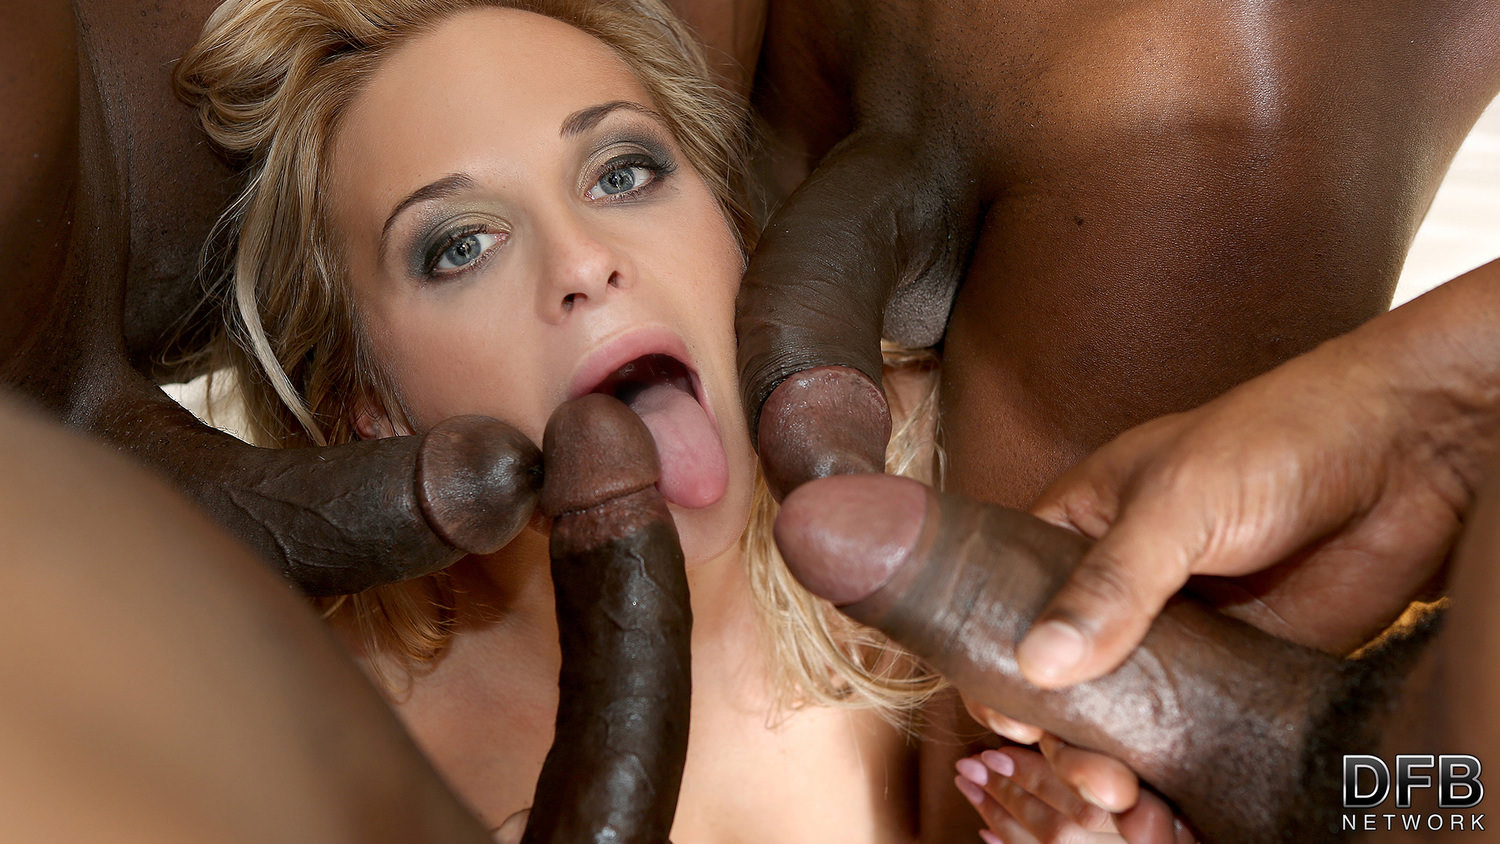 Anal,Blowjob,Hardcore,Top Rated,Double Penetration,Gangbang,HD Videos,Double Anal,Double,Hardcore Anal,Penetration,Anal Gangbang,Interracial Anal,Anal Penetration,Interracial Double Penetration,Hardcore Double Penetration,Interracial Hardcore,Interracial Anal Gangbang,Hardcore Interracial Anal,DFBNetwork,Female Choice